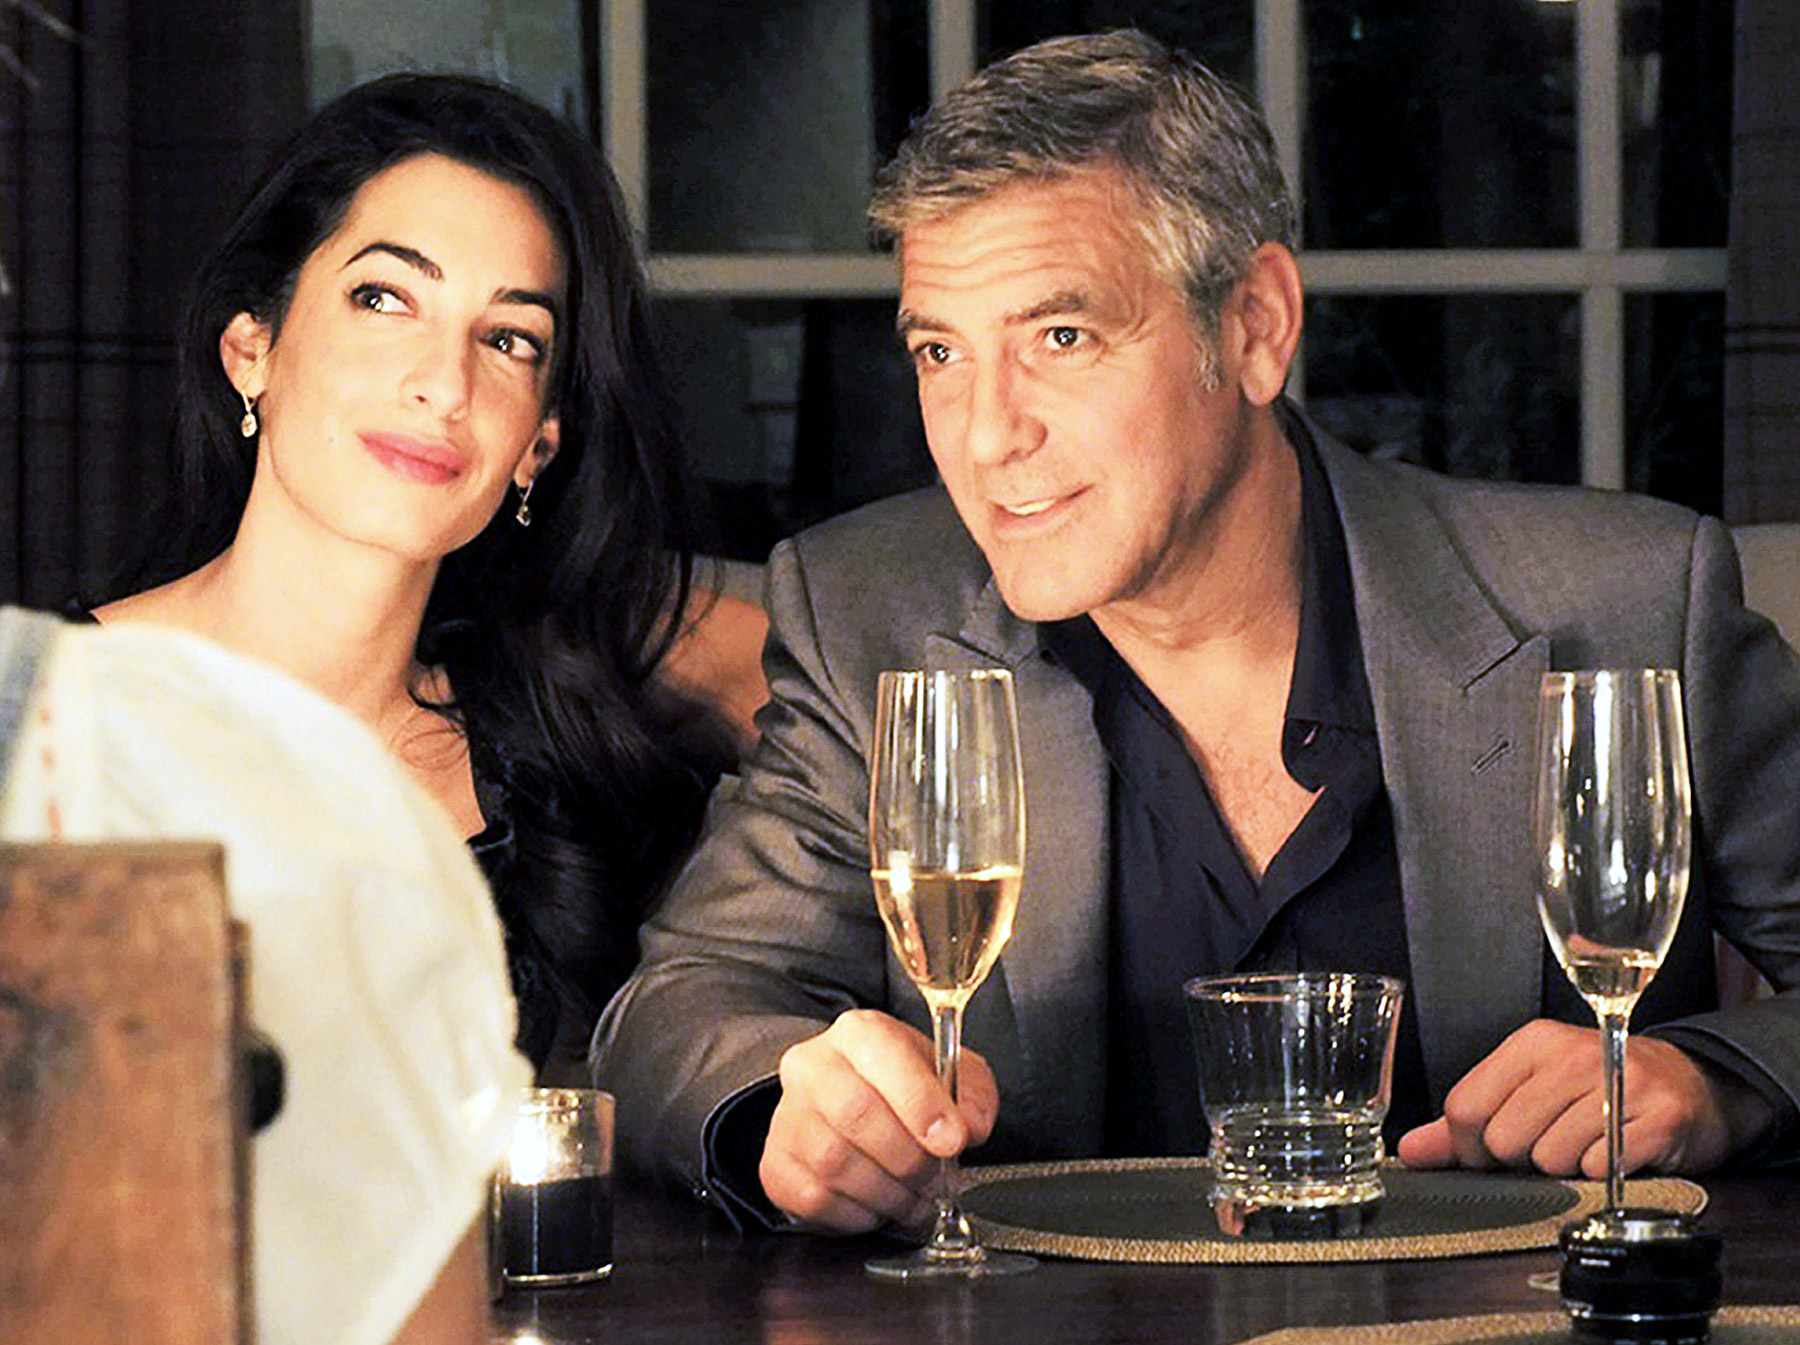 http://taoofdating.com/wp-content/uploads/2014/06/amal-alamuddin-george-clooney-zoom.jpg